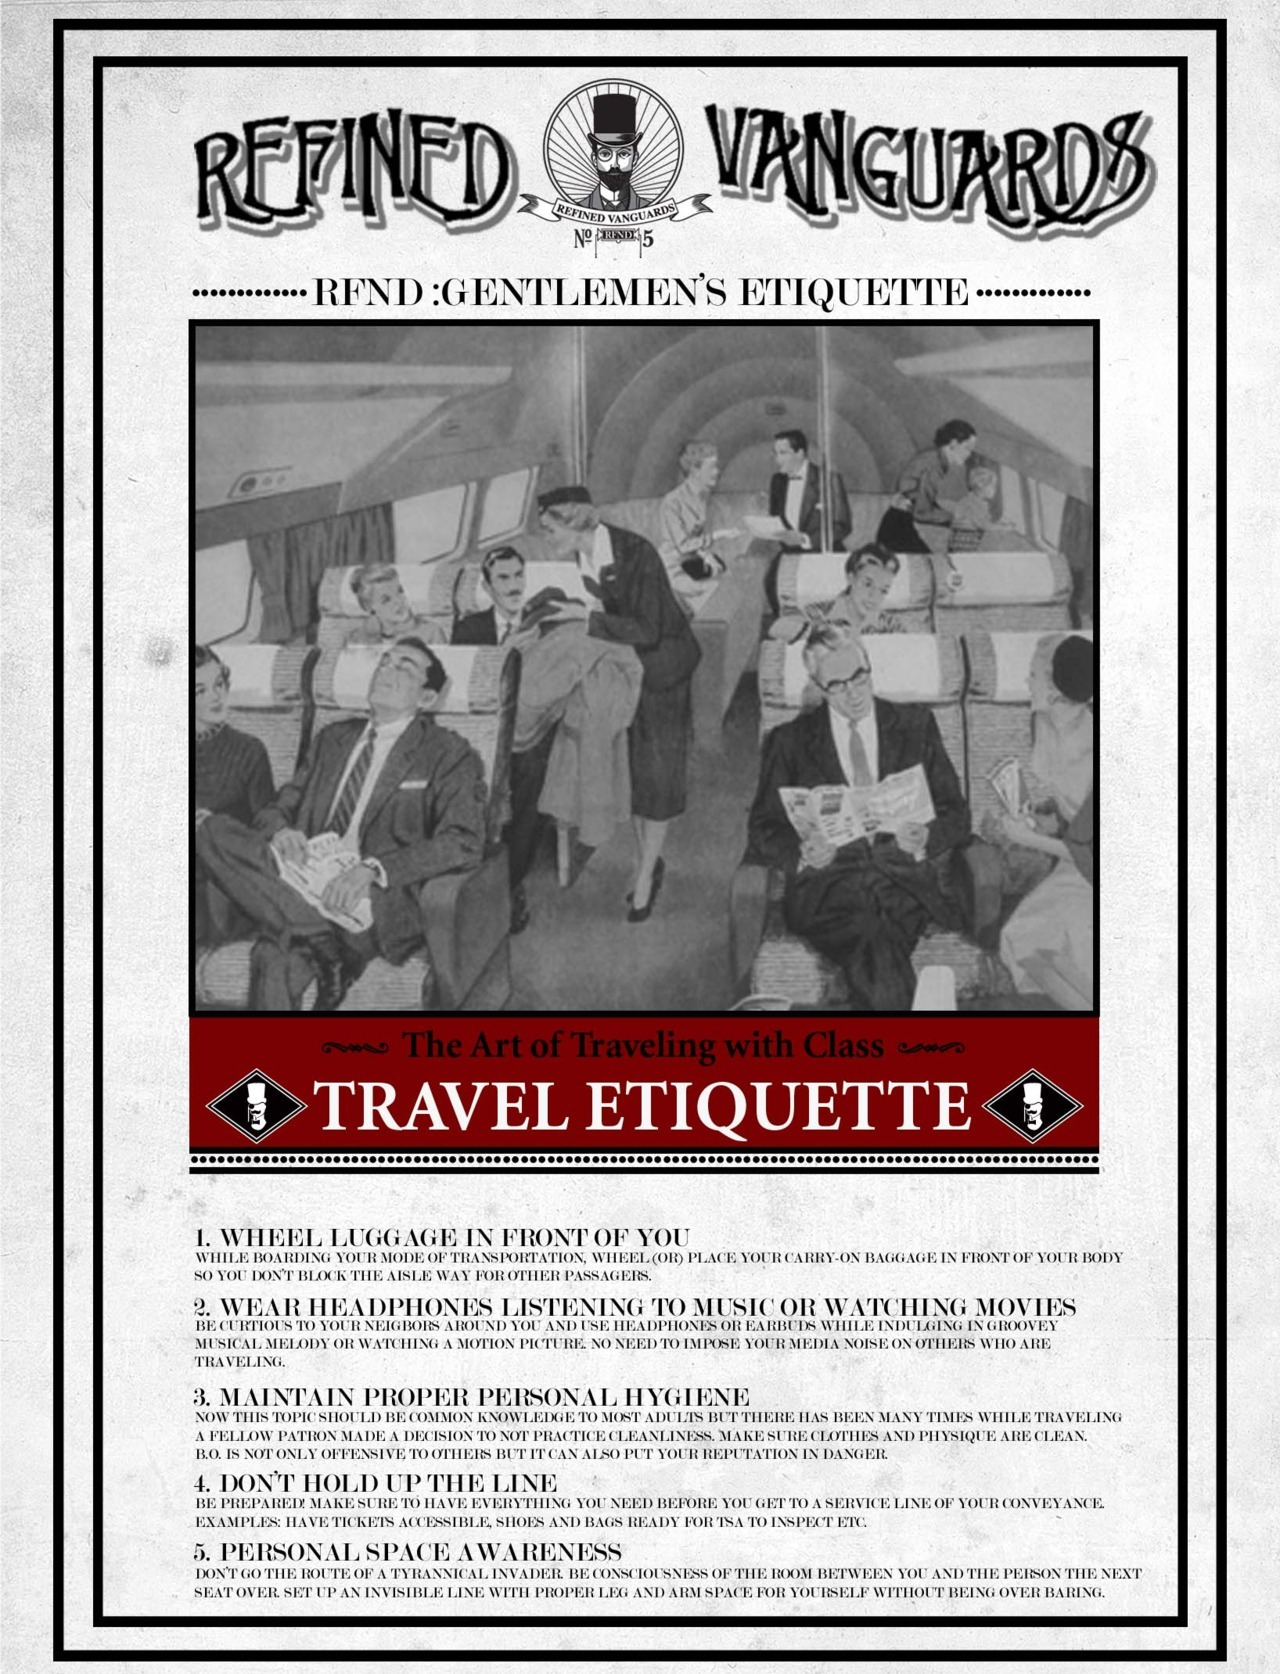 RFND Gentlemen's Etiquette XI Throughout the year hundreds of jet-setters, train riders and bus trotters journey to different cities or countries.  Whether it's personal or business, traveling is one of those luxuries that most of us enjoy…READ MORE!